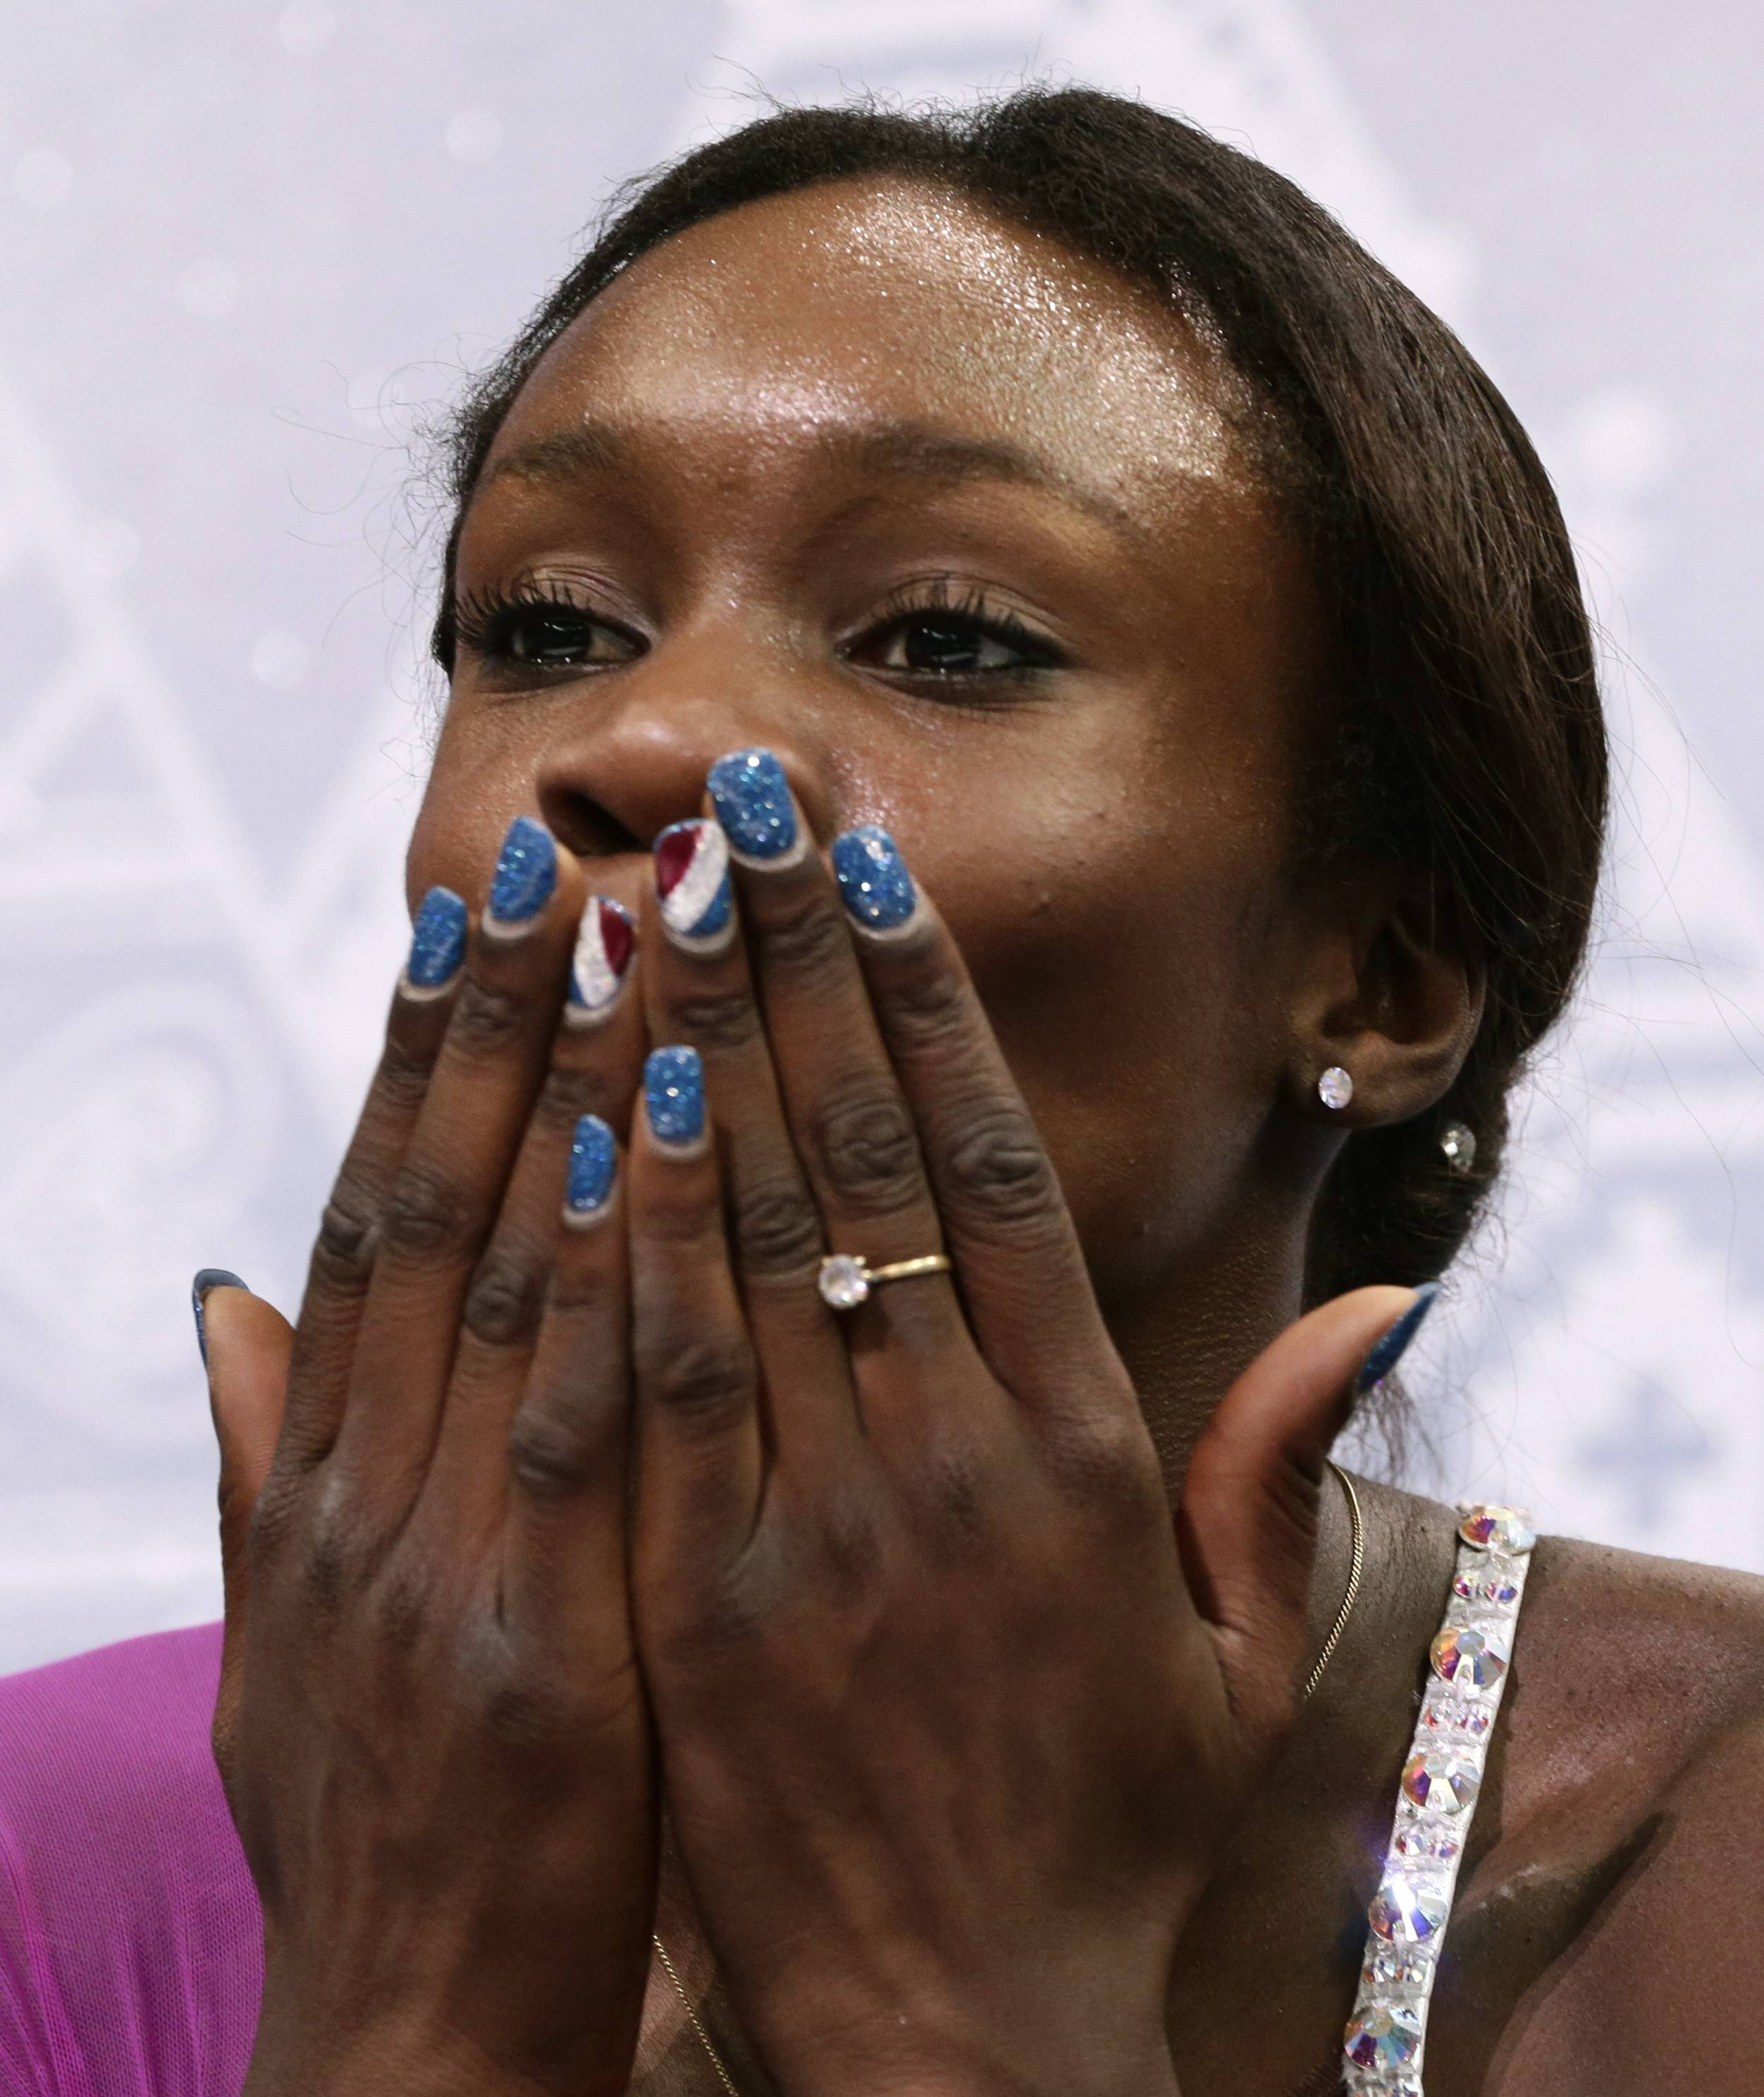 Mae Berenice Meite of France blows a kiss to spectators as she waits in the results area after completing her routine in the women's short program figure skating competition.